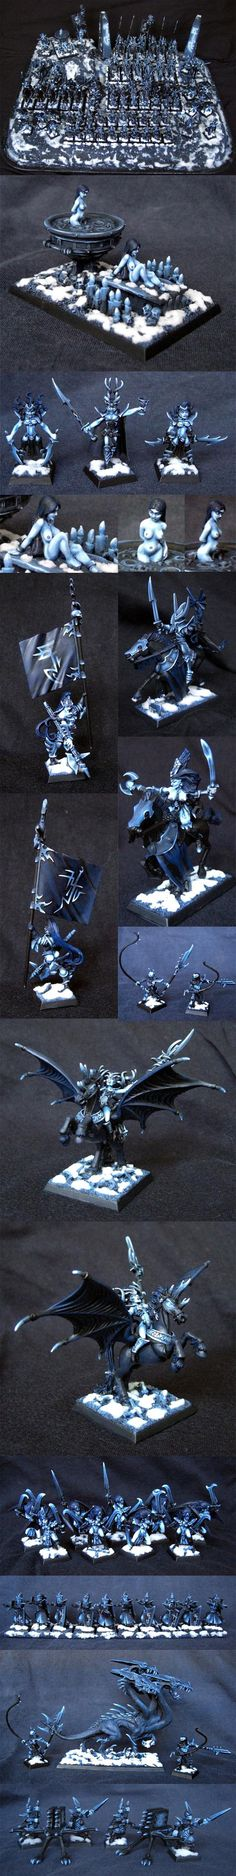 Dark Elves Underworld Style:Painting an army using just one color